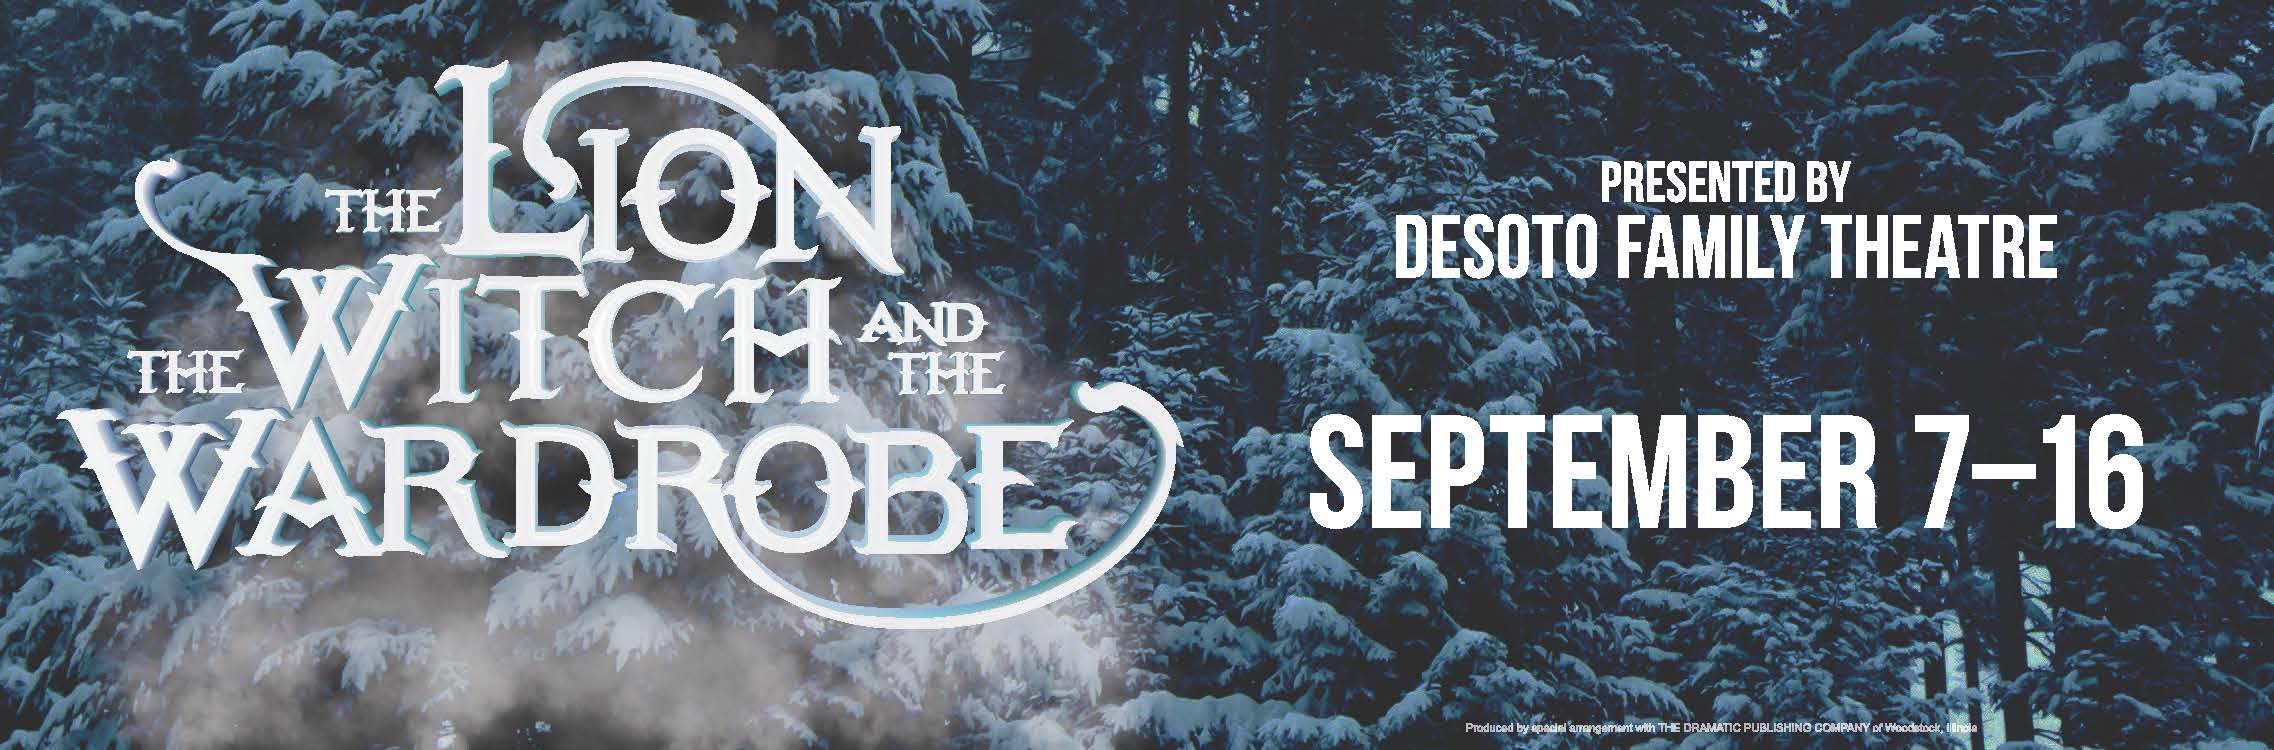 DFT PRESENTS: THE LION, THE WITCH, AND THE WARDROBE